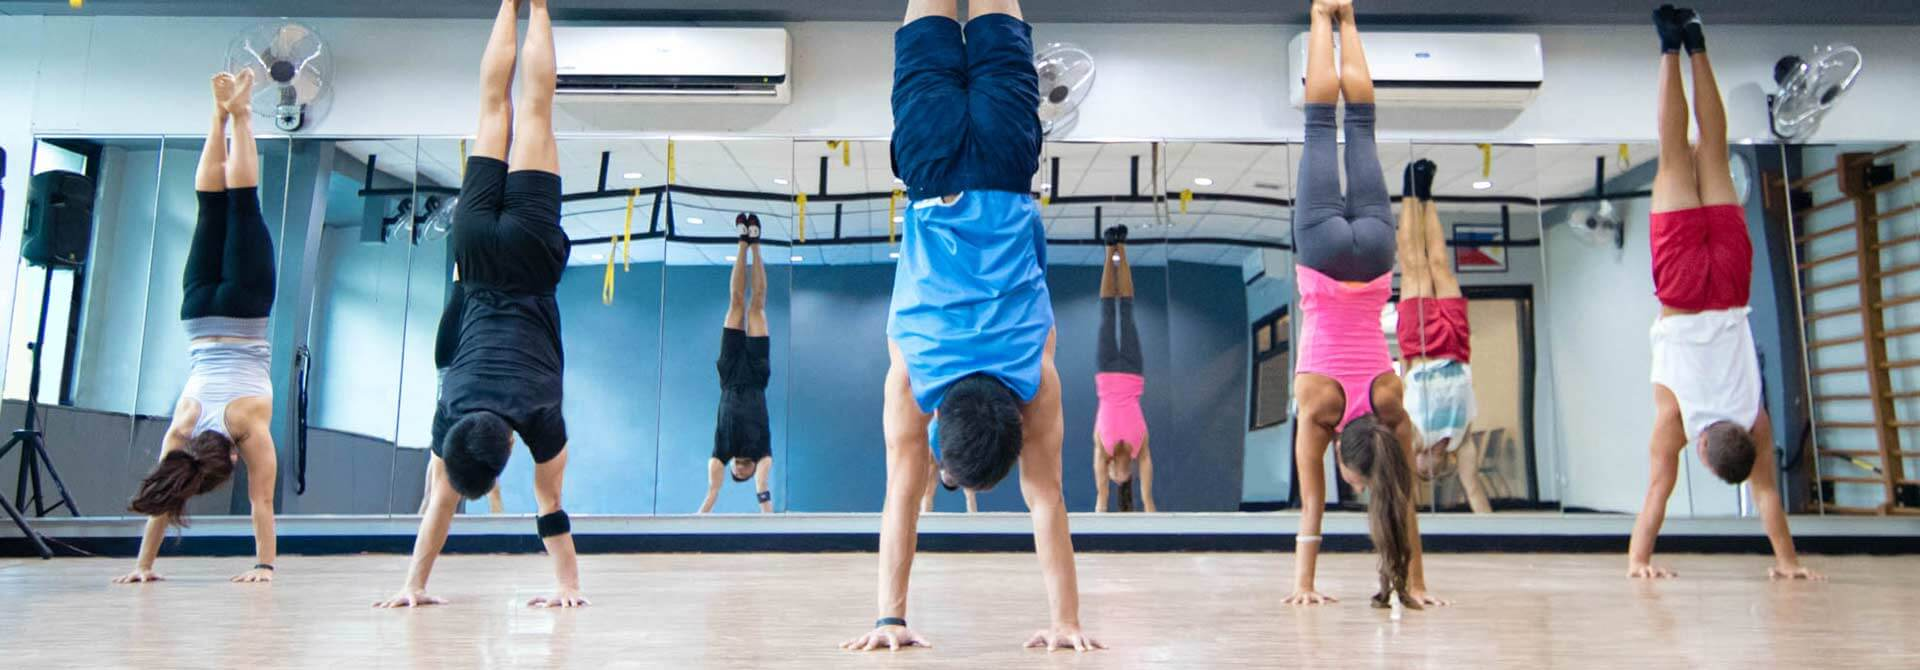 GymnasticBodies athletes show off their handstand control.